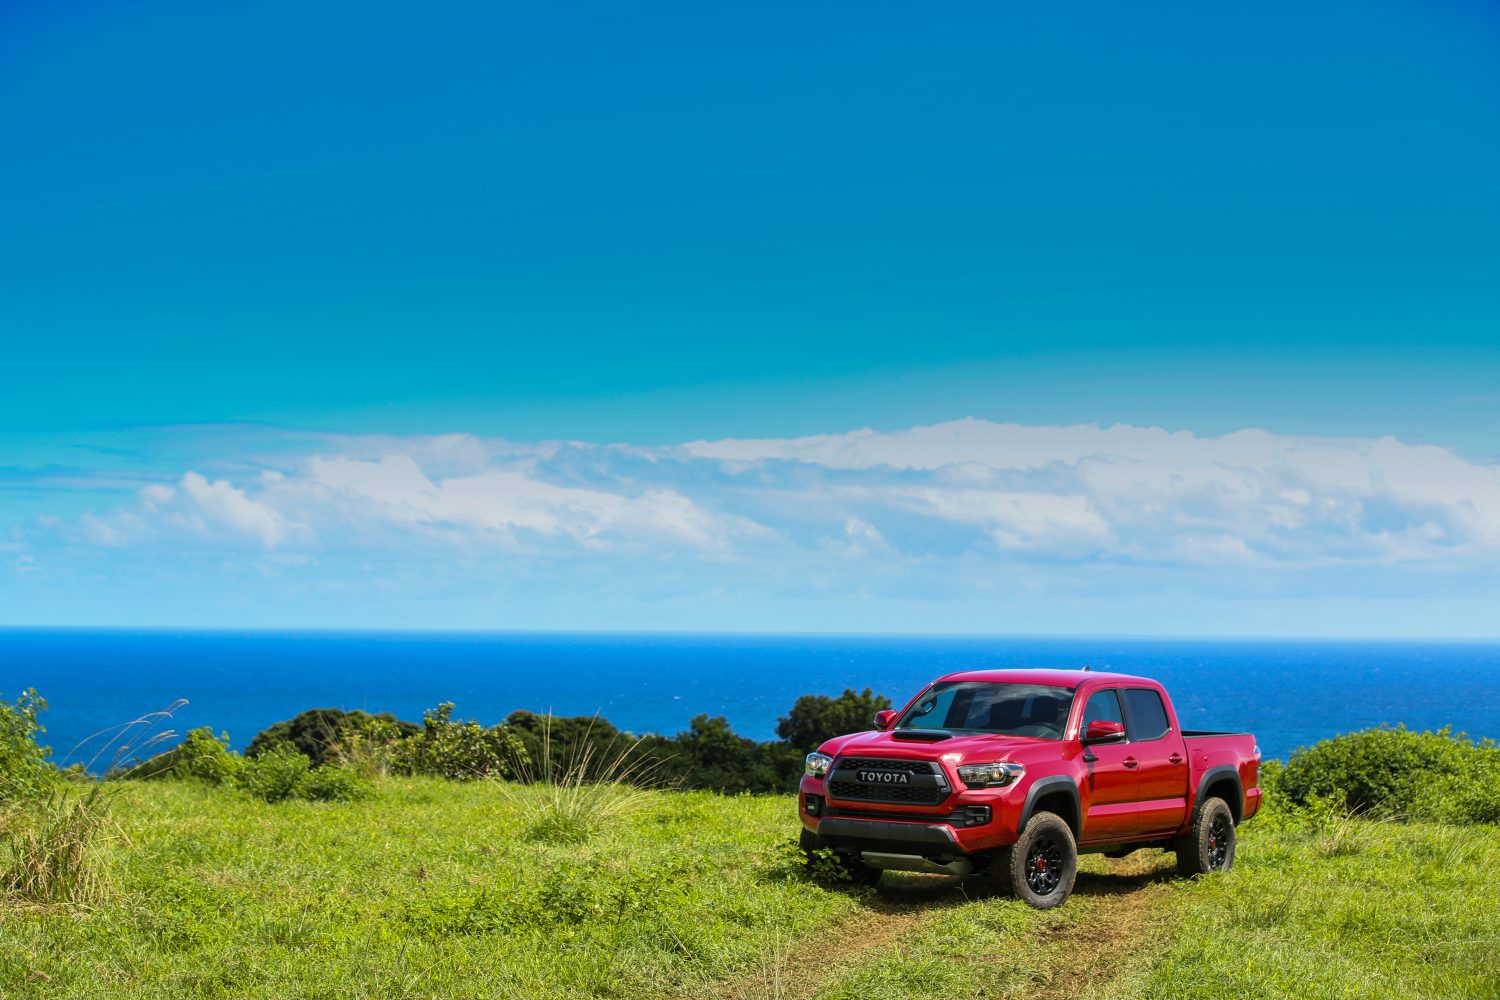 2017 Tacoma Welcomes All-New TRD Pro to Its Work-Hard, Play